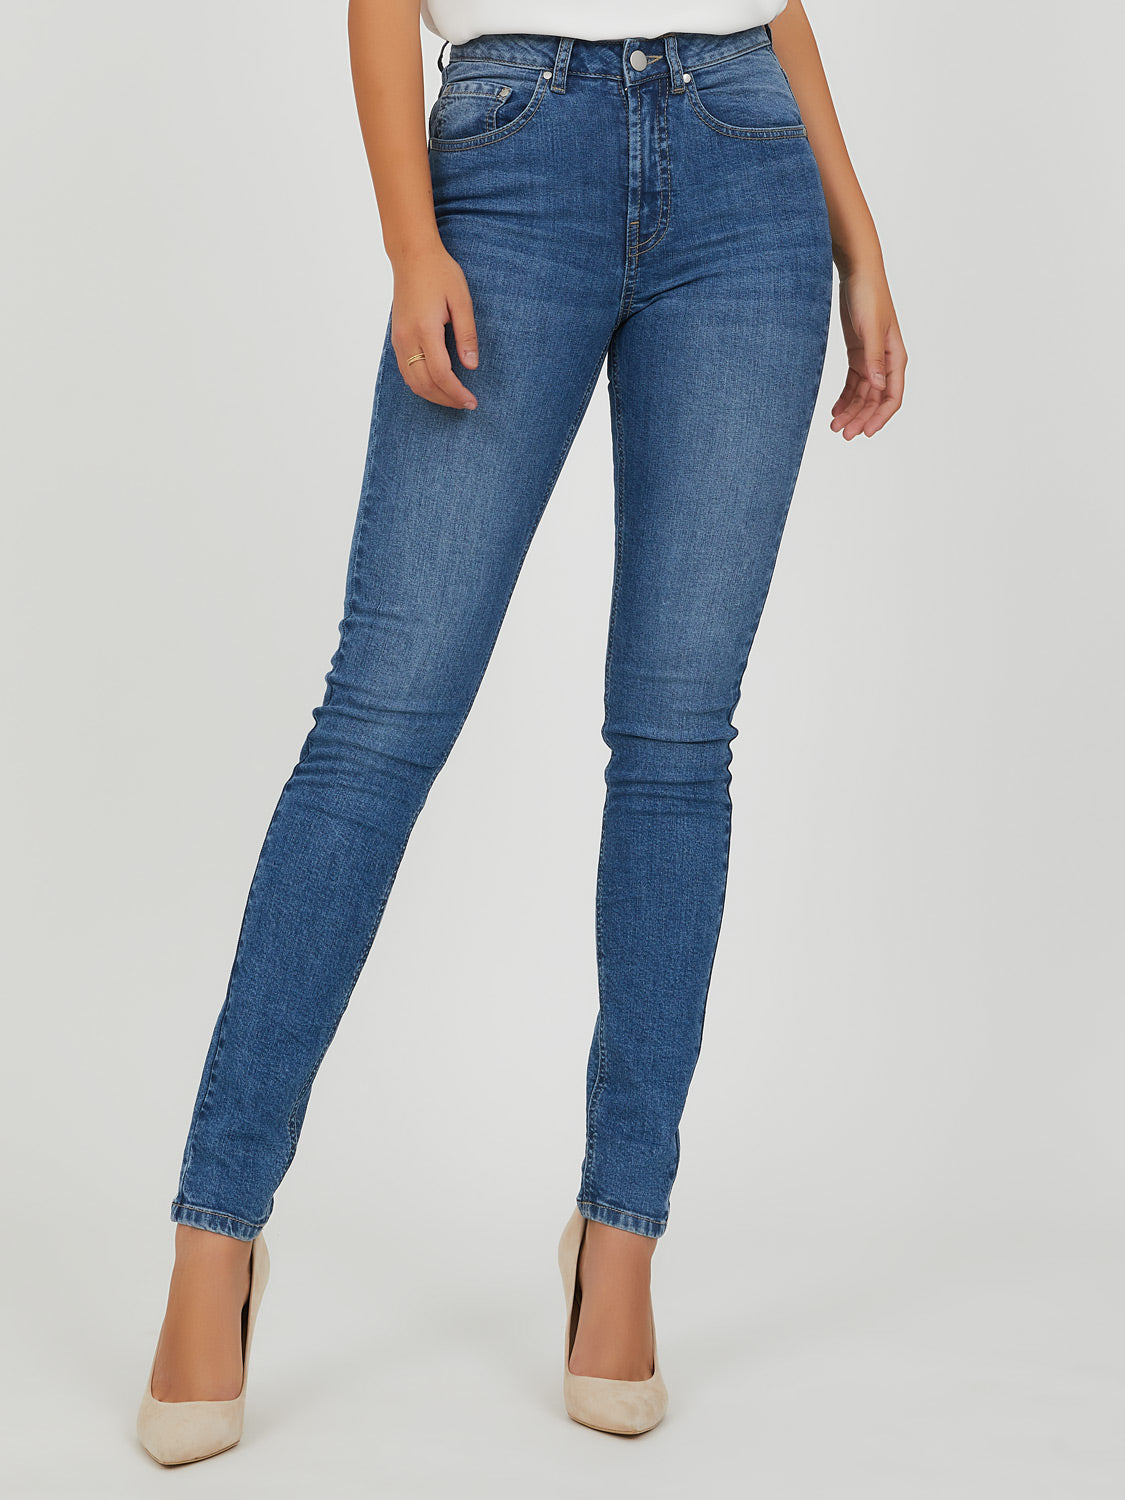 Classic-Rise Skinny Jeans